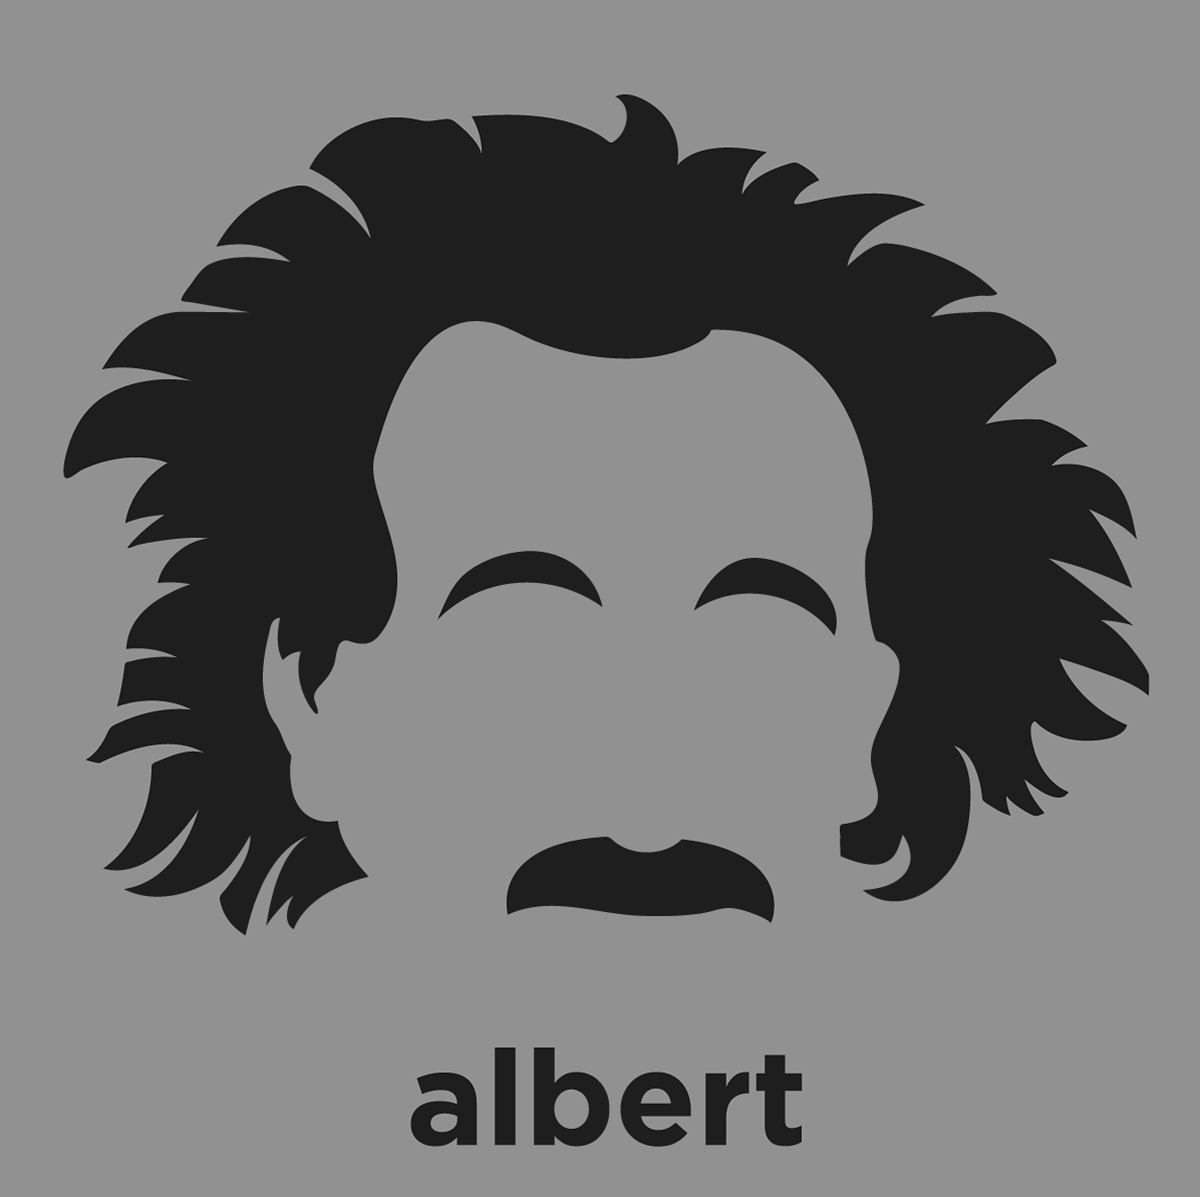 Albert einstein shirt from hirsute history for Minimalist architecture theory